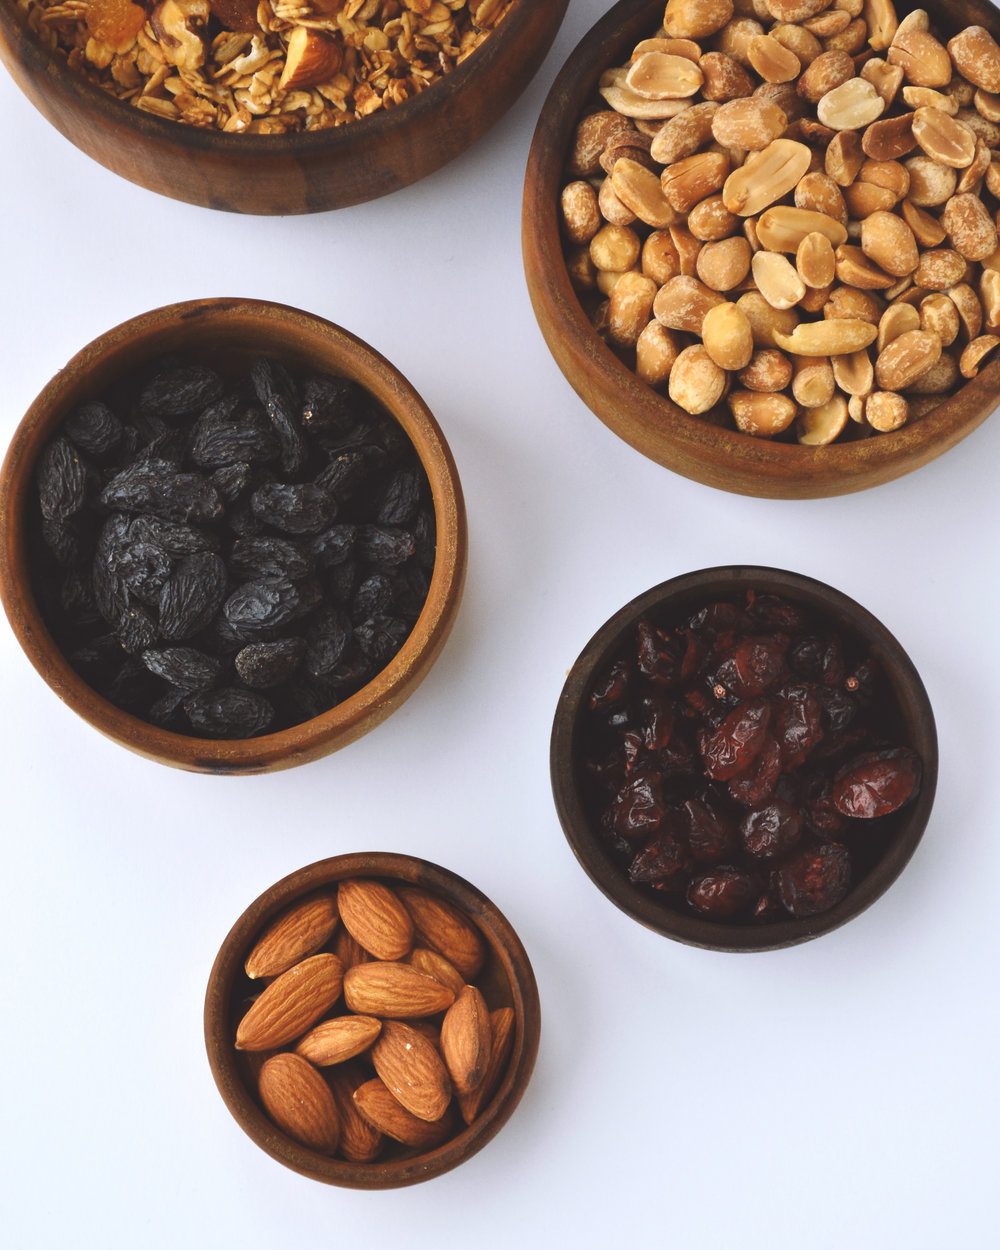 Nuts, cranberries, and raisins in wooden bowls are a healthy component of any diet.